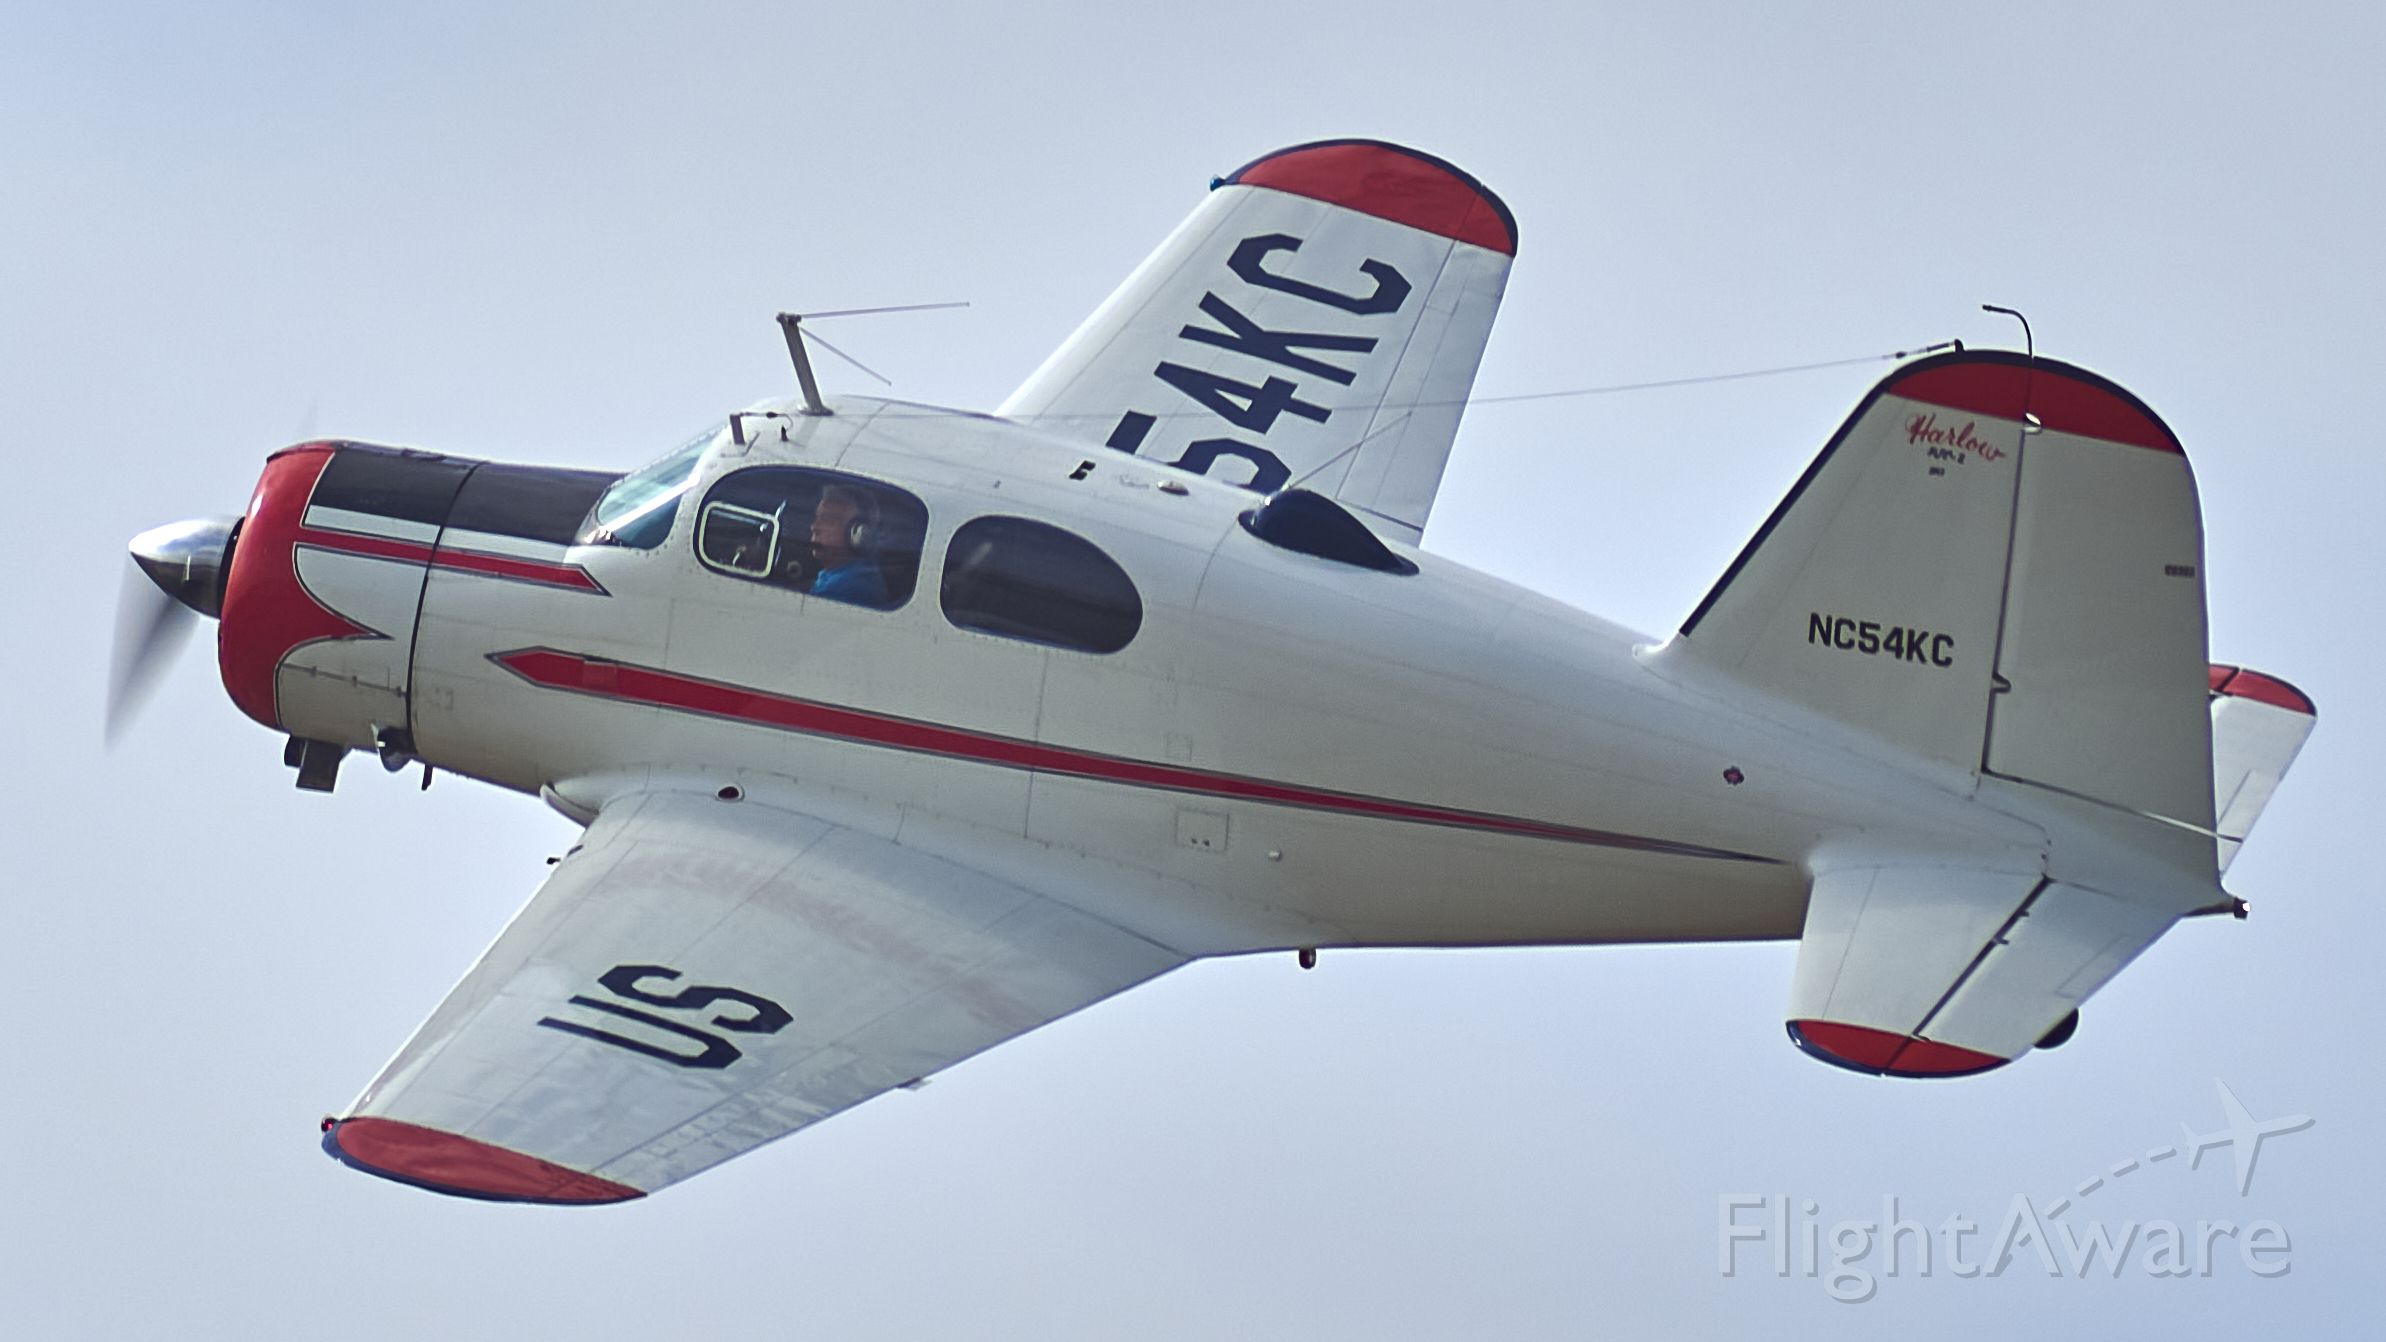 NC54KC — - Harlow on the Flex out of KBJC after a low pass over show center